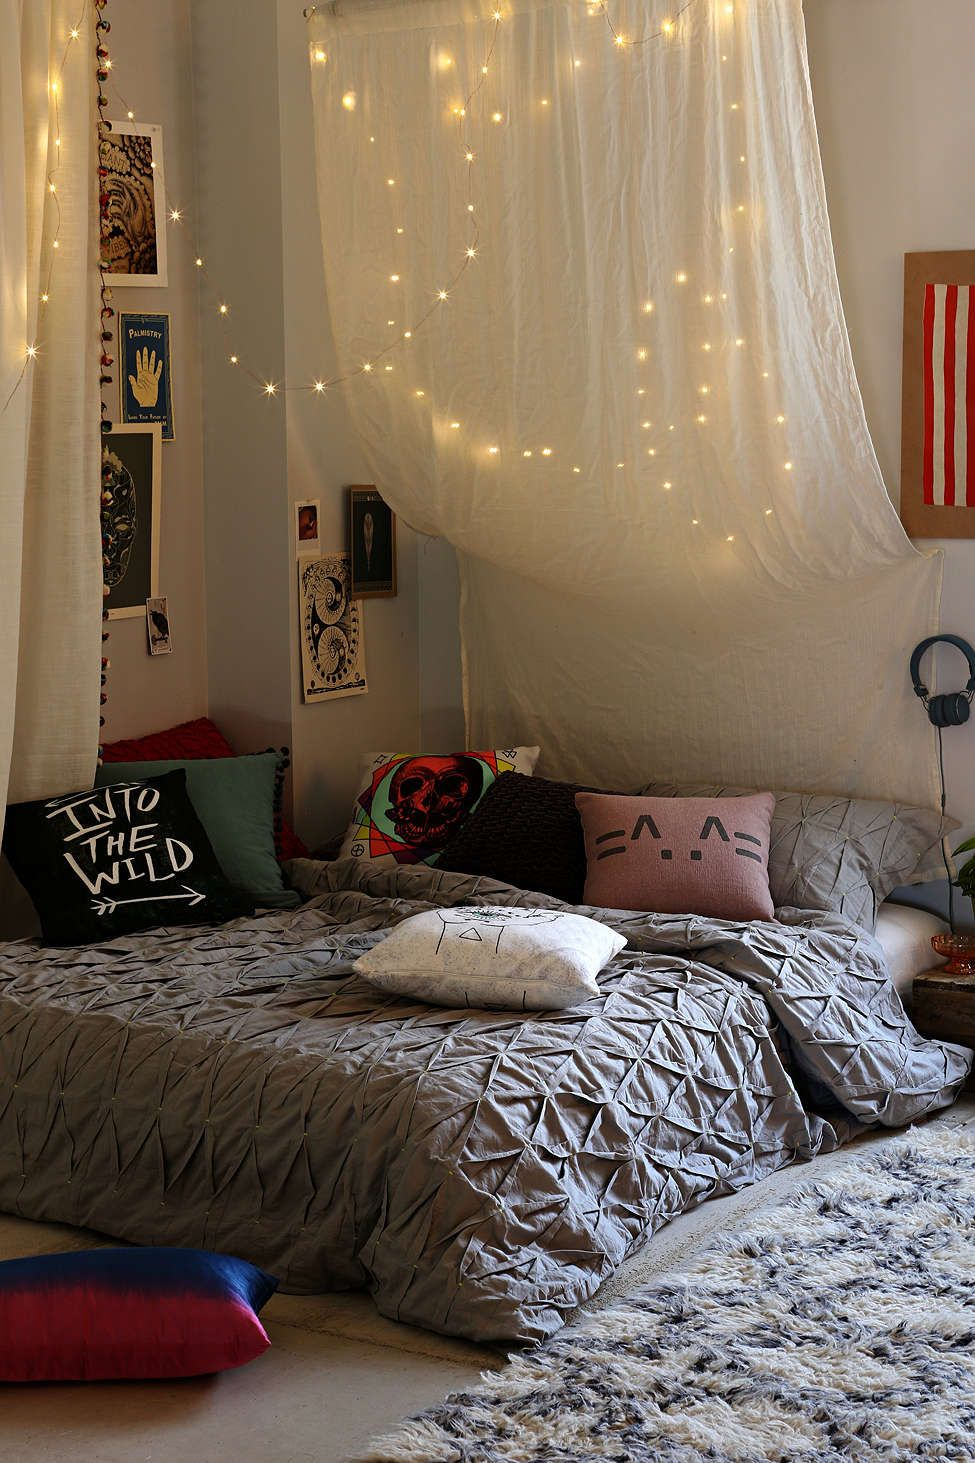 Firefly Lights Idea Is To Rearrange To Constellations Bedroom Christmas Lights In Bedroom Room Decor